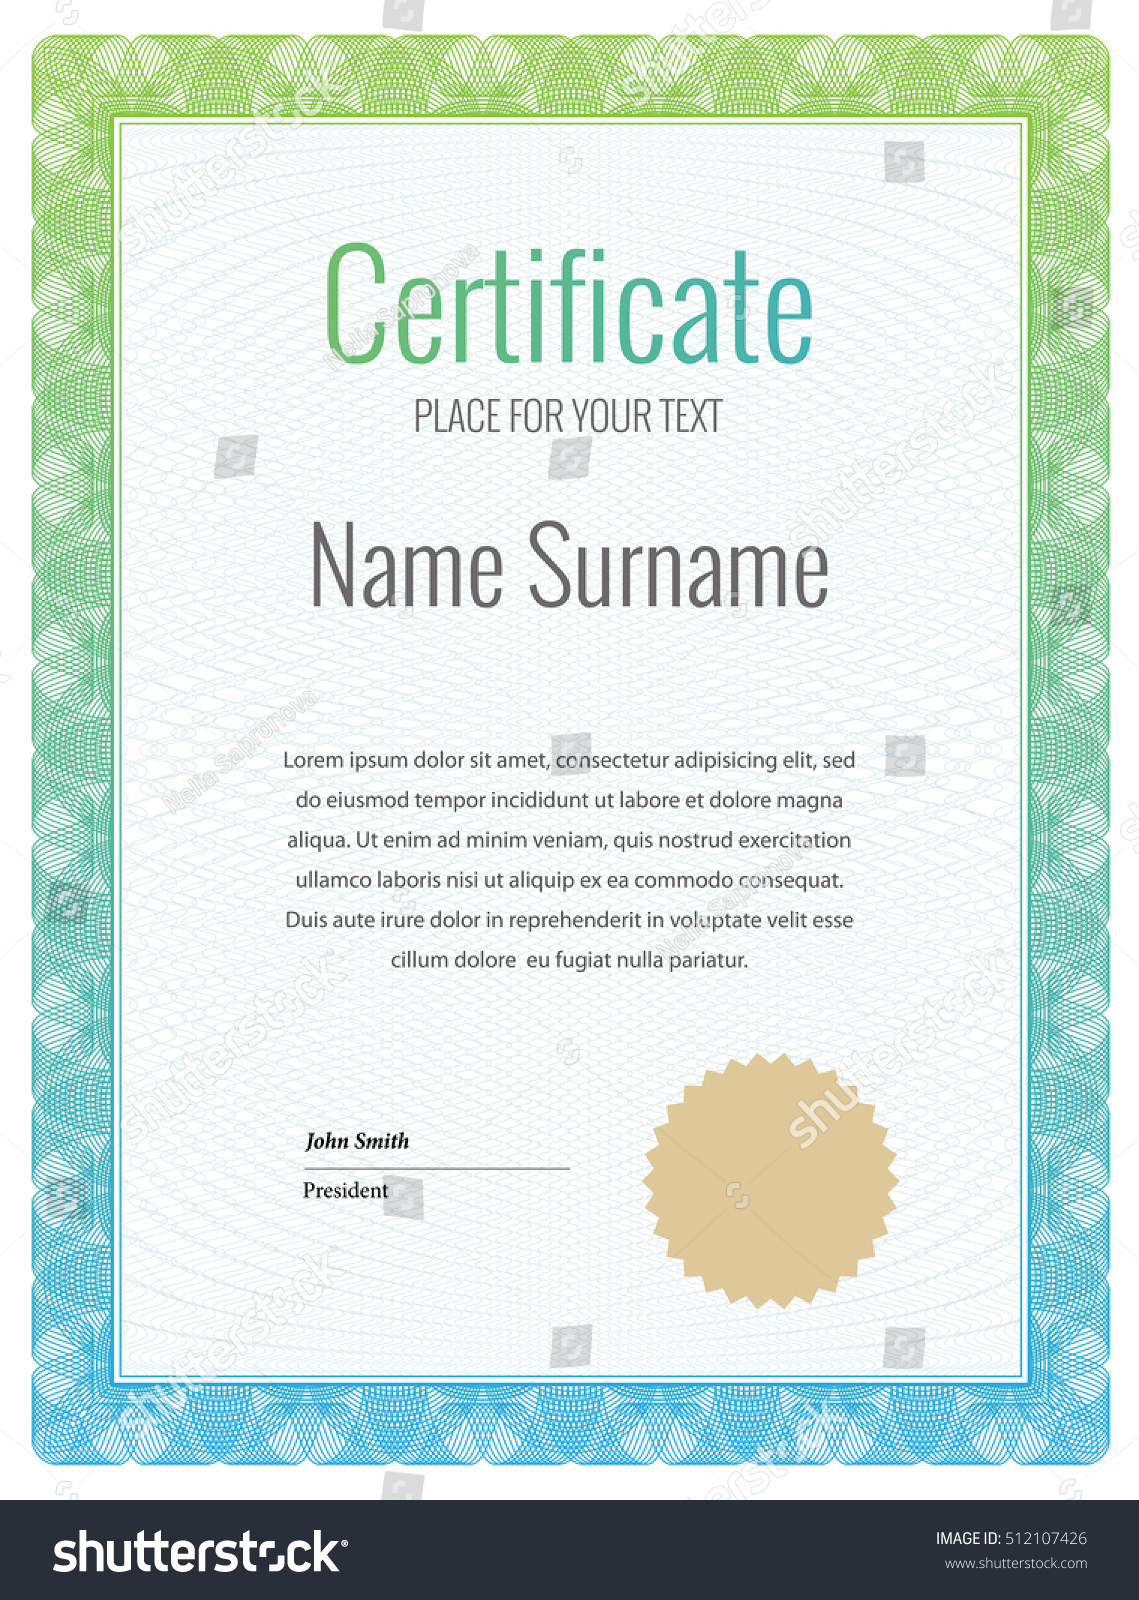 Certificate template diplomas currency award free certificate of certificate template diploma currency award background stock stock vector certificate template diploma currency award background gift yelopaper Image collections